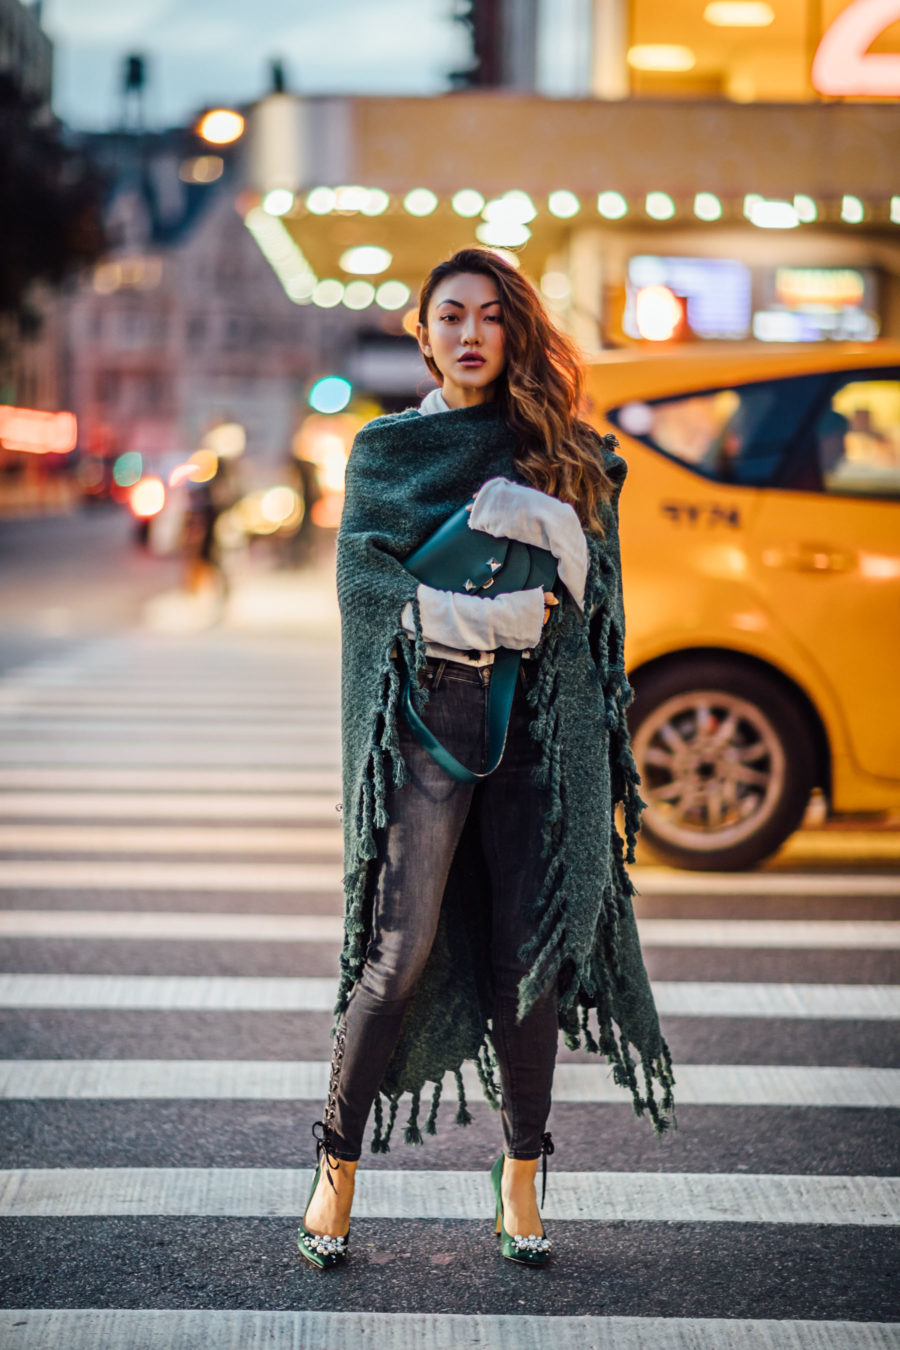 New jacket styles for fall 2018 - green fringe poncho, green cape // Notjessfashion.com